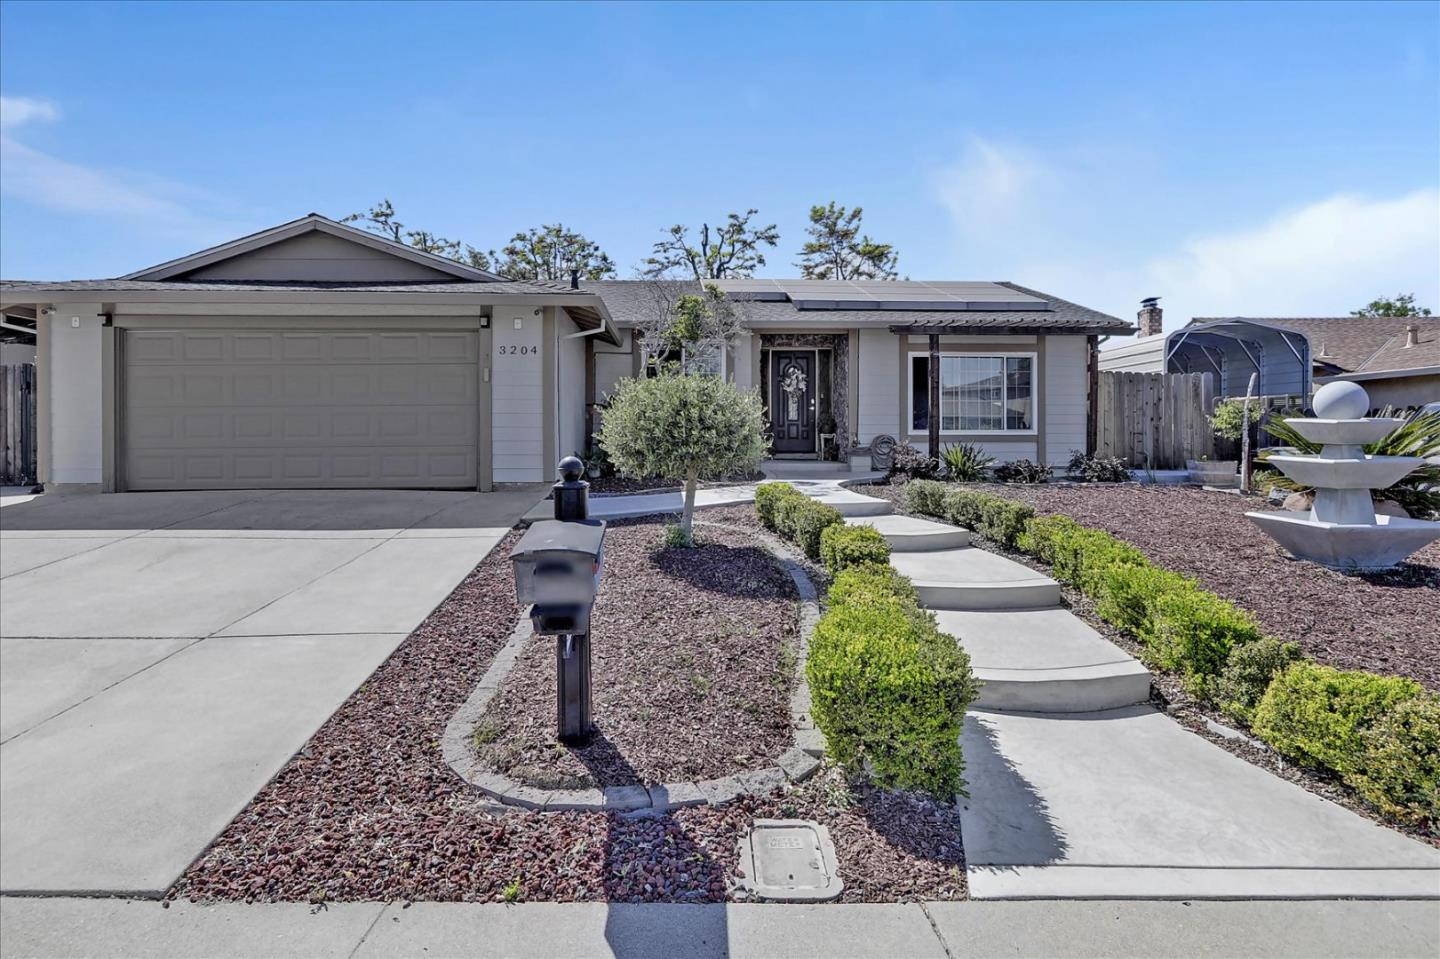 3204 Barmouth DR, Antioch, California 94509, 3 Bedrooms Bedrooms, ,2 BathroomsBathrooms,Single Family,For Sale,3204 Barmouth DR,ML81842969